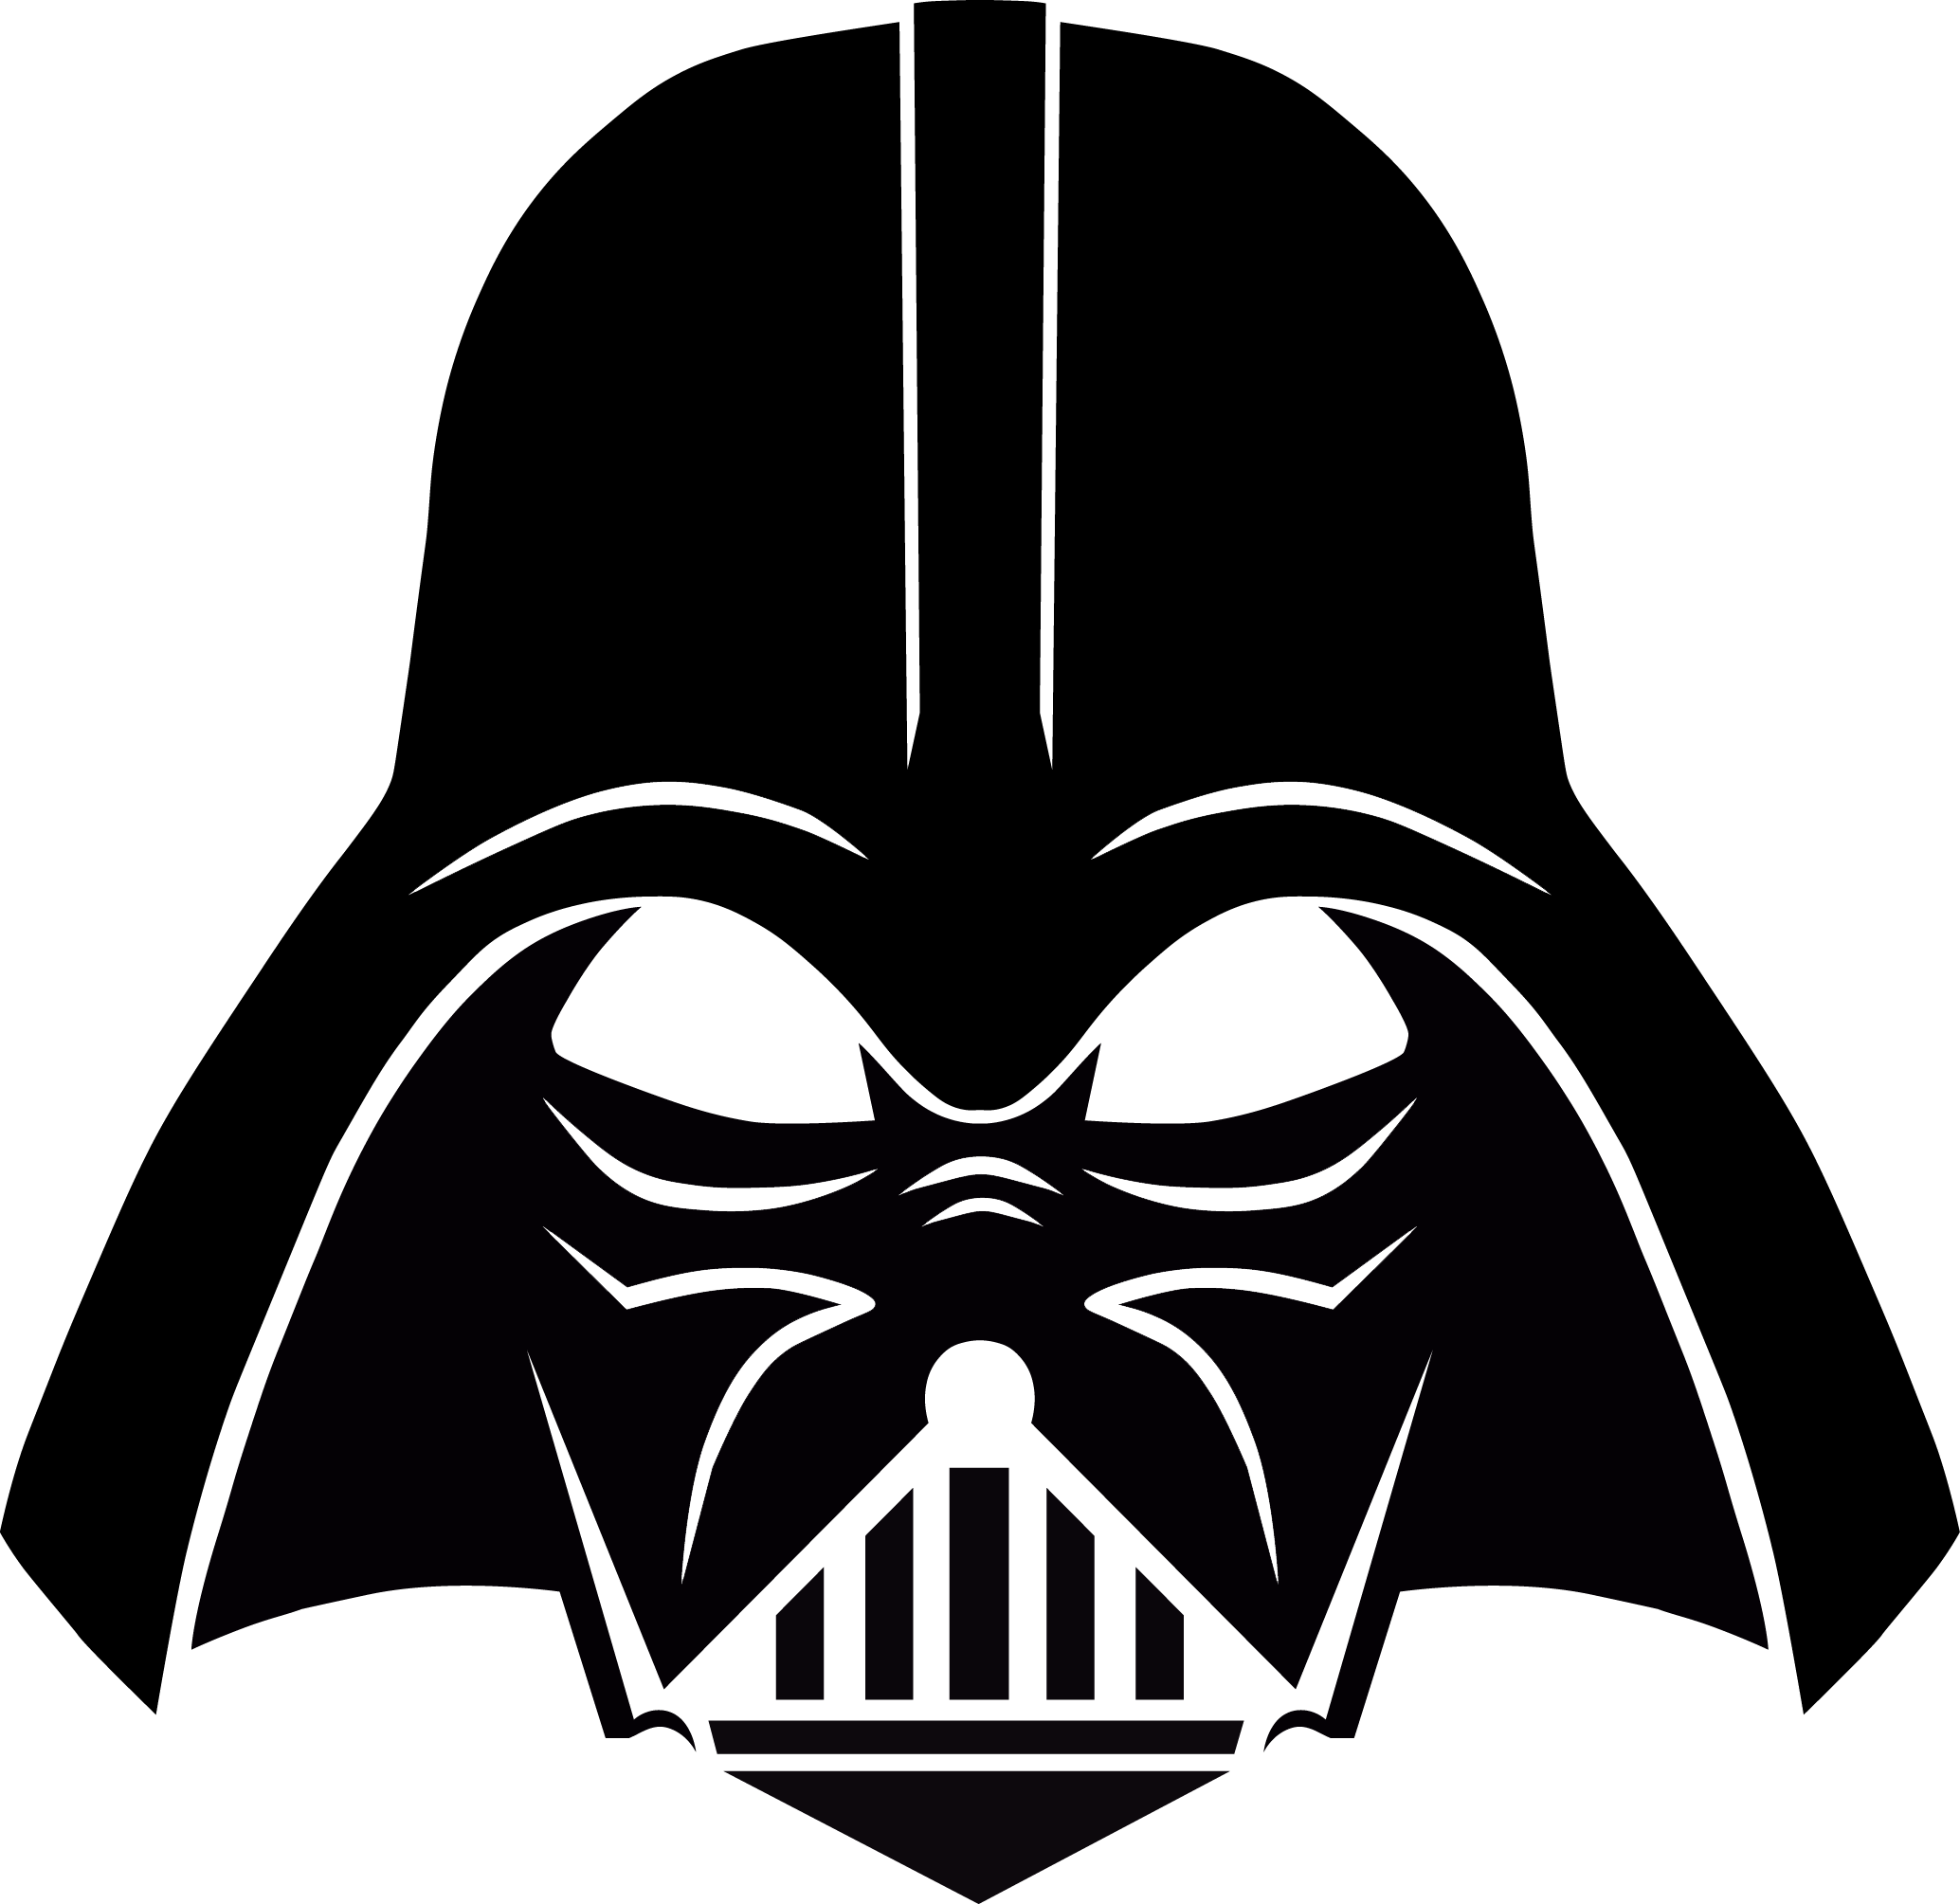 2068x2009 Darth Vader Stencil, Free Download Darth Vader Stencil, Darth